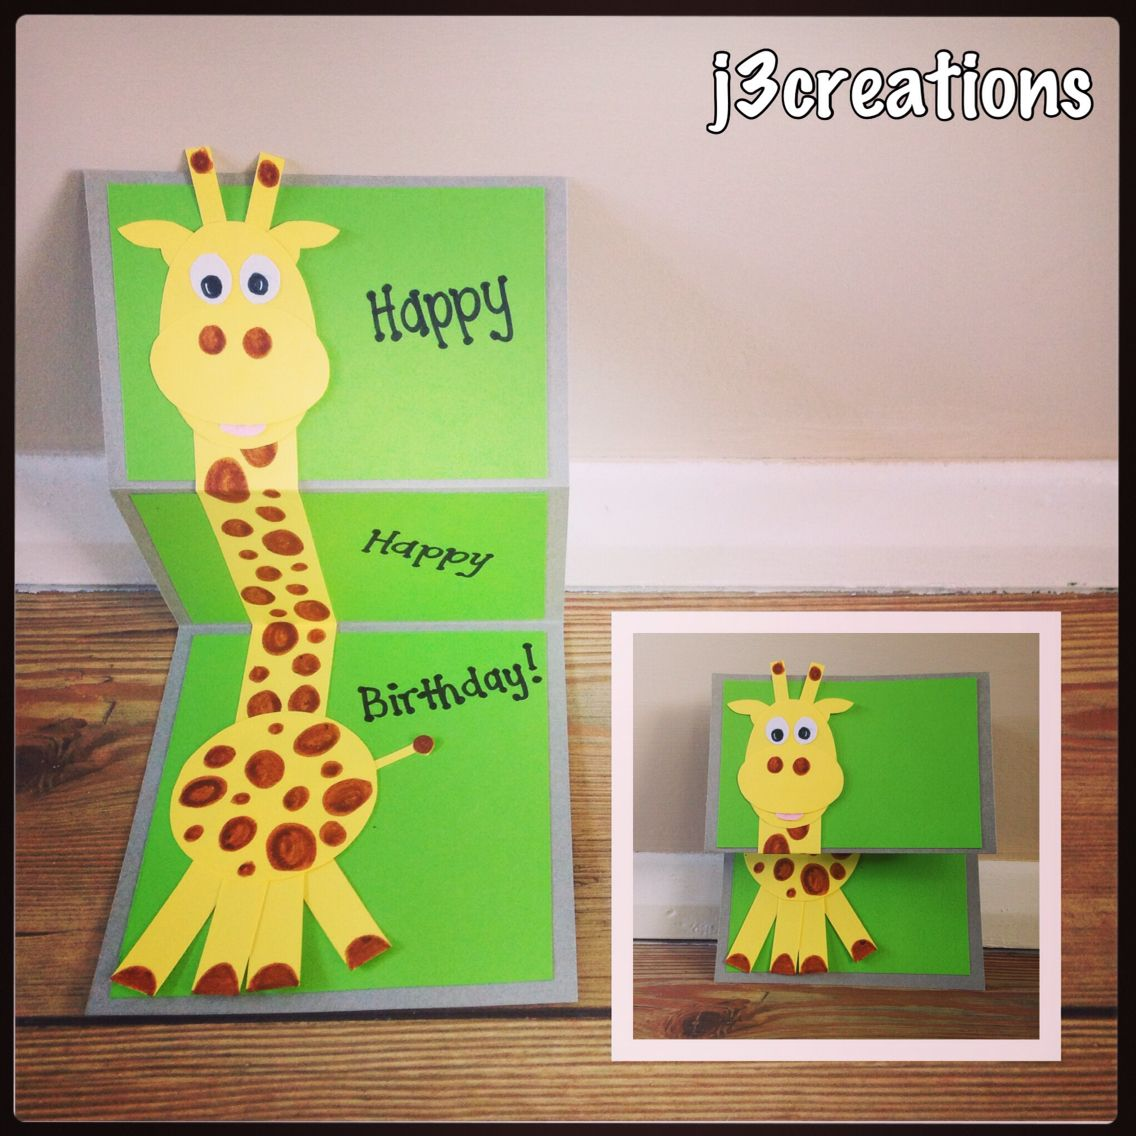 The Cutest Ever Giraffe Card I Created For A Soon To Be 4 Year Old Boy So Cute Birthdaycard J3creations